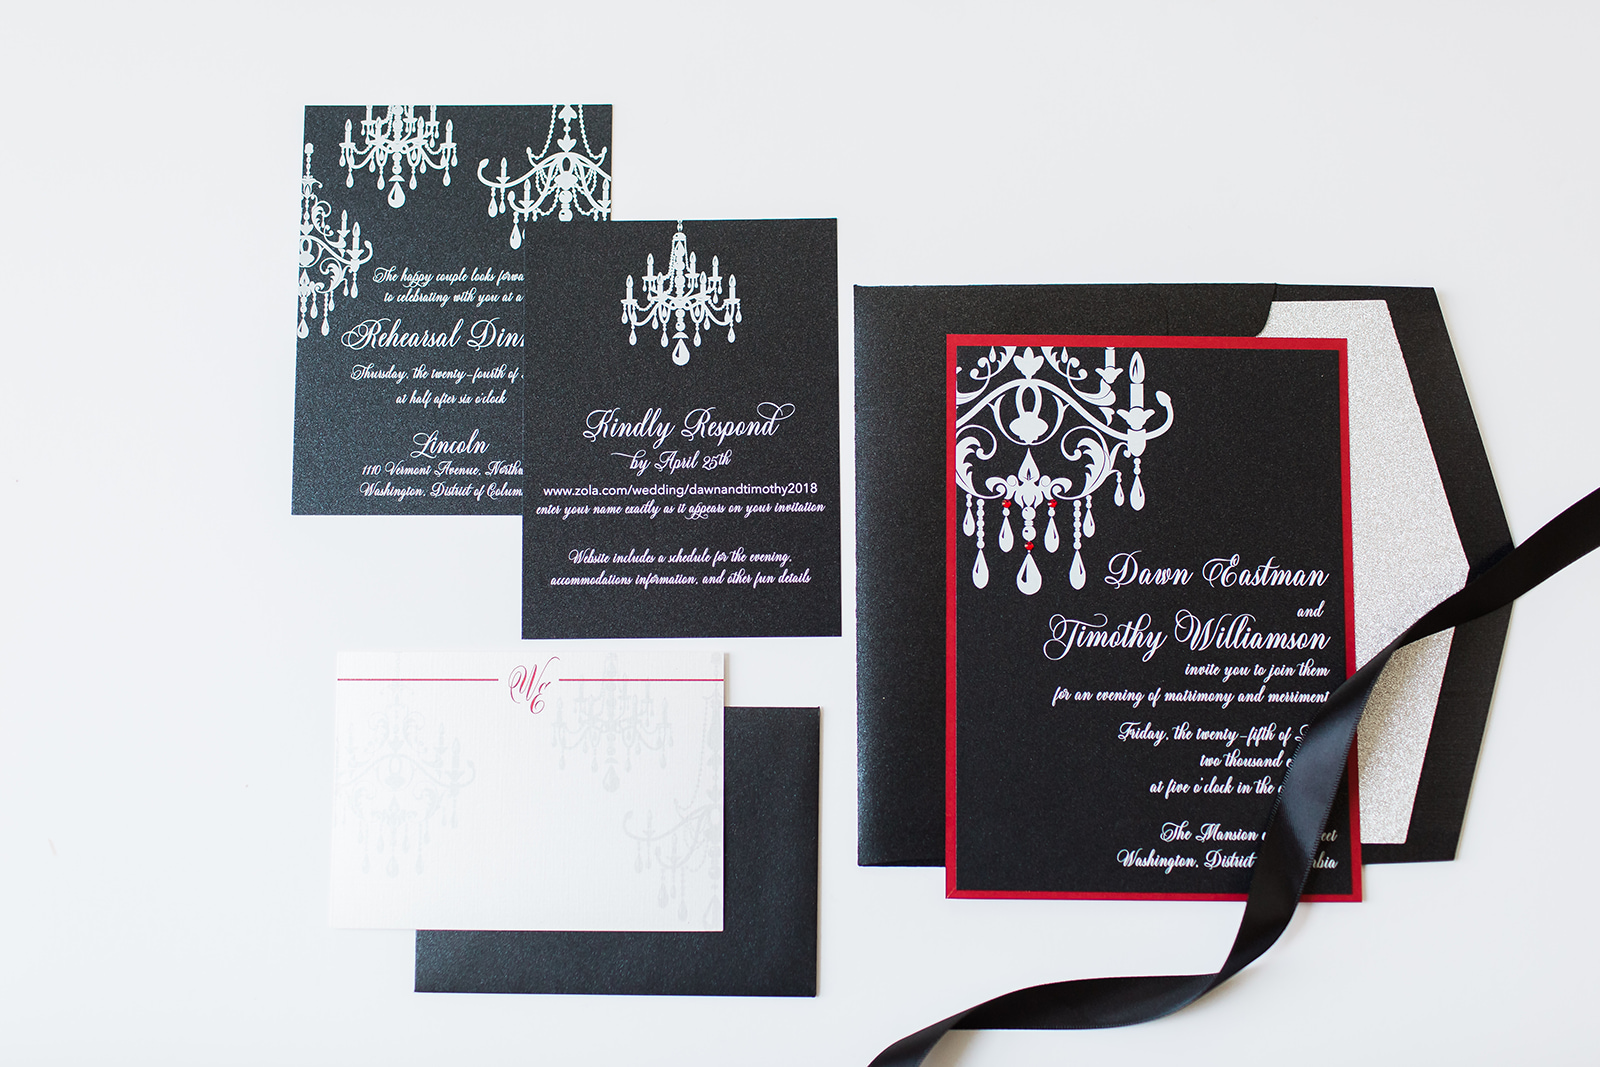 custom wedding invitations in black, white, and red with a rhinestone embellished chandelier